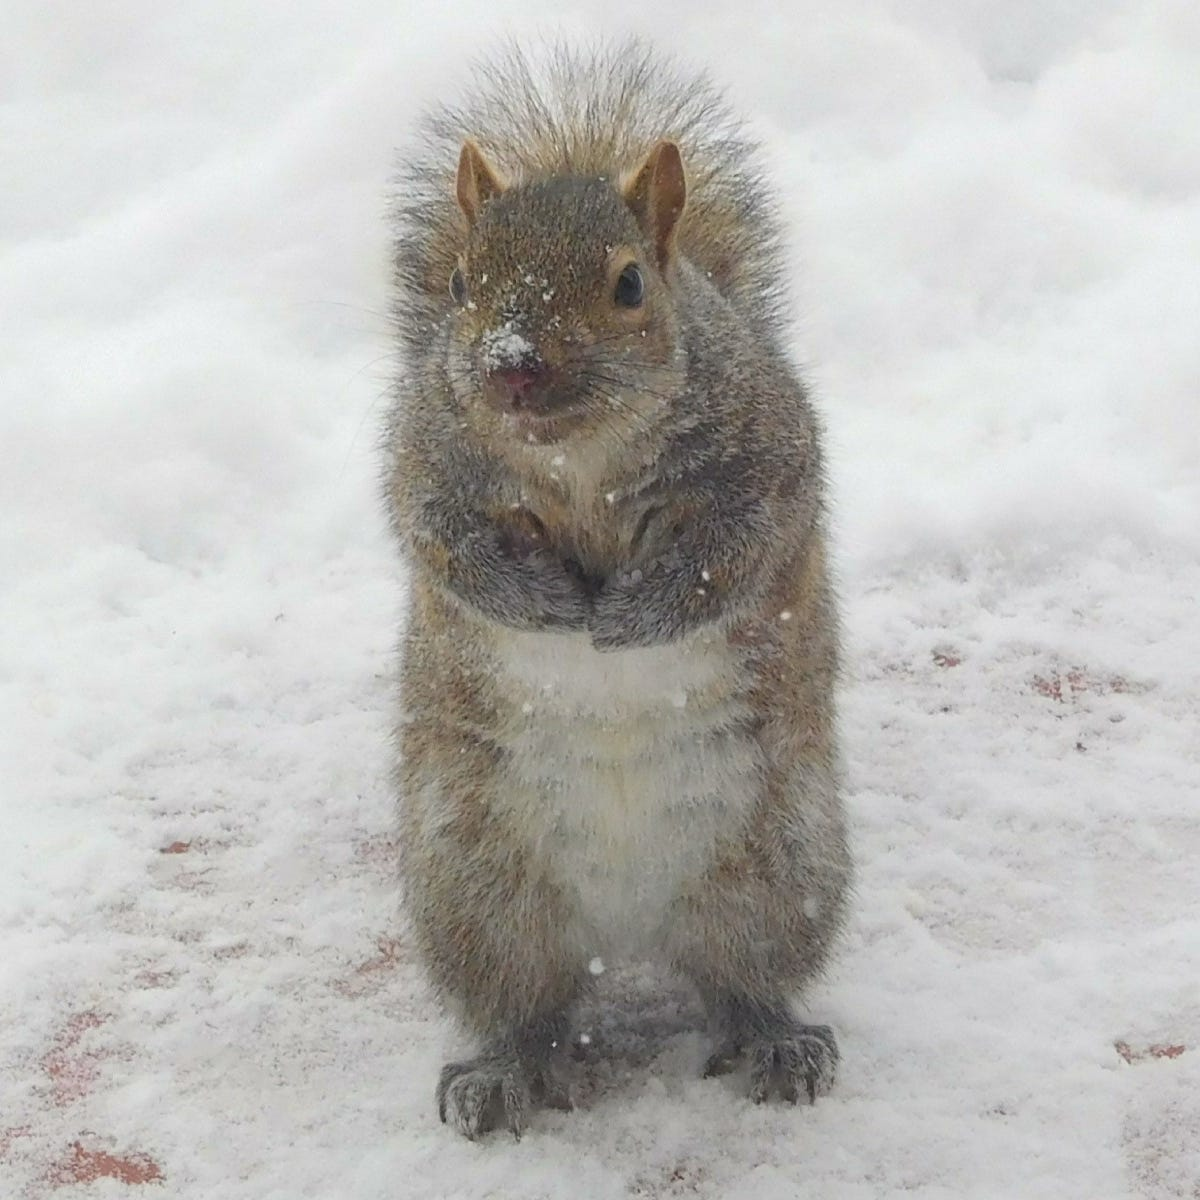 Family squirrel hunt? Not so fast, say animal activists